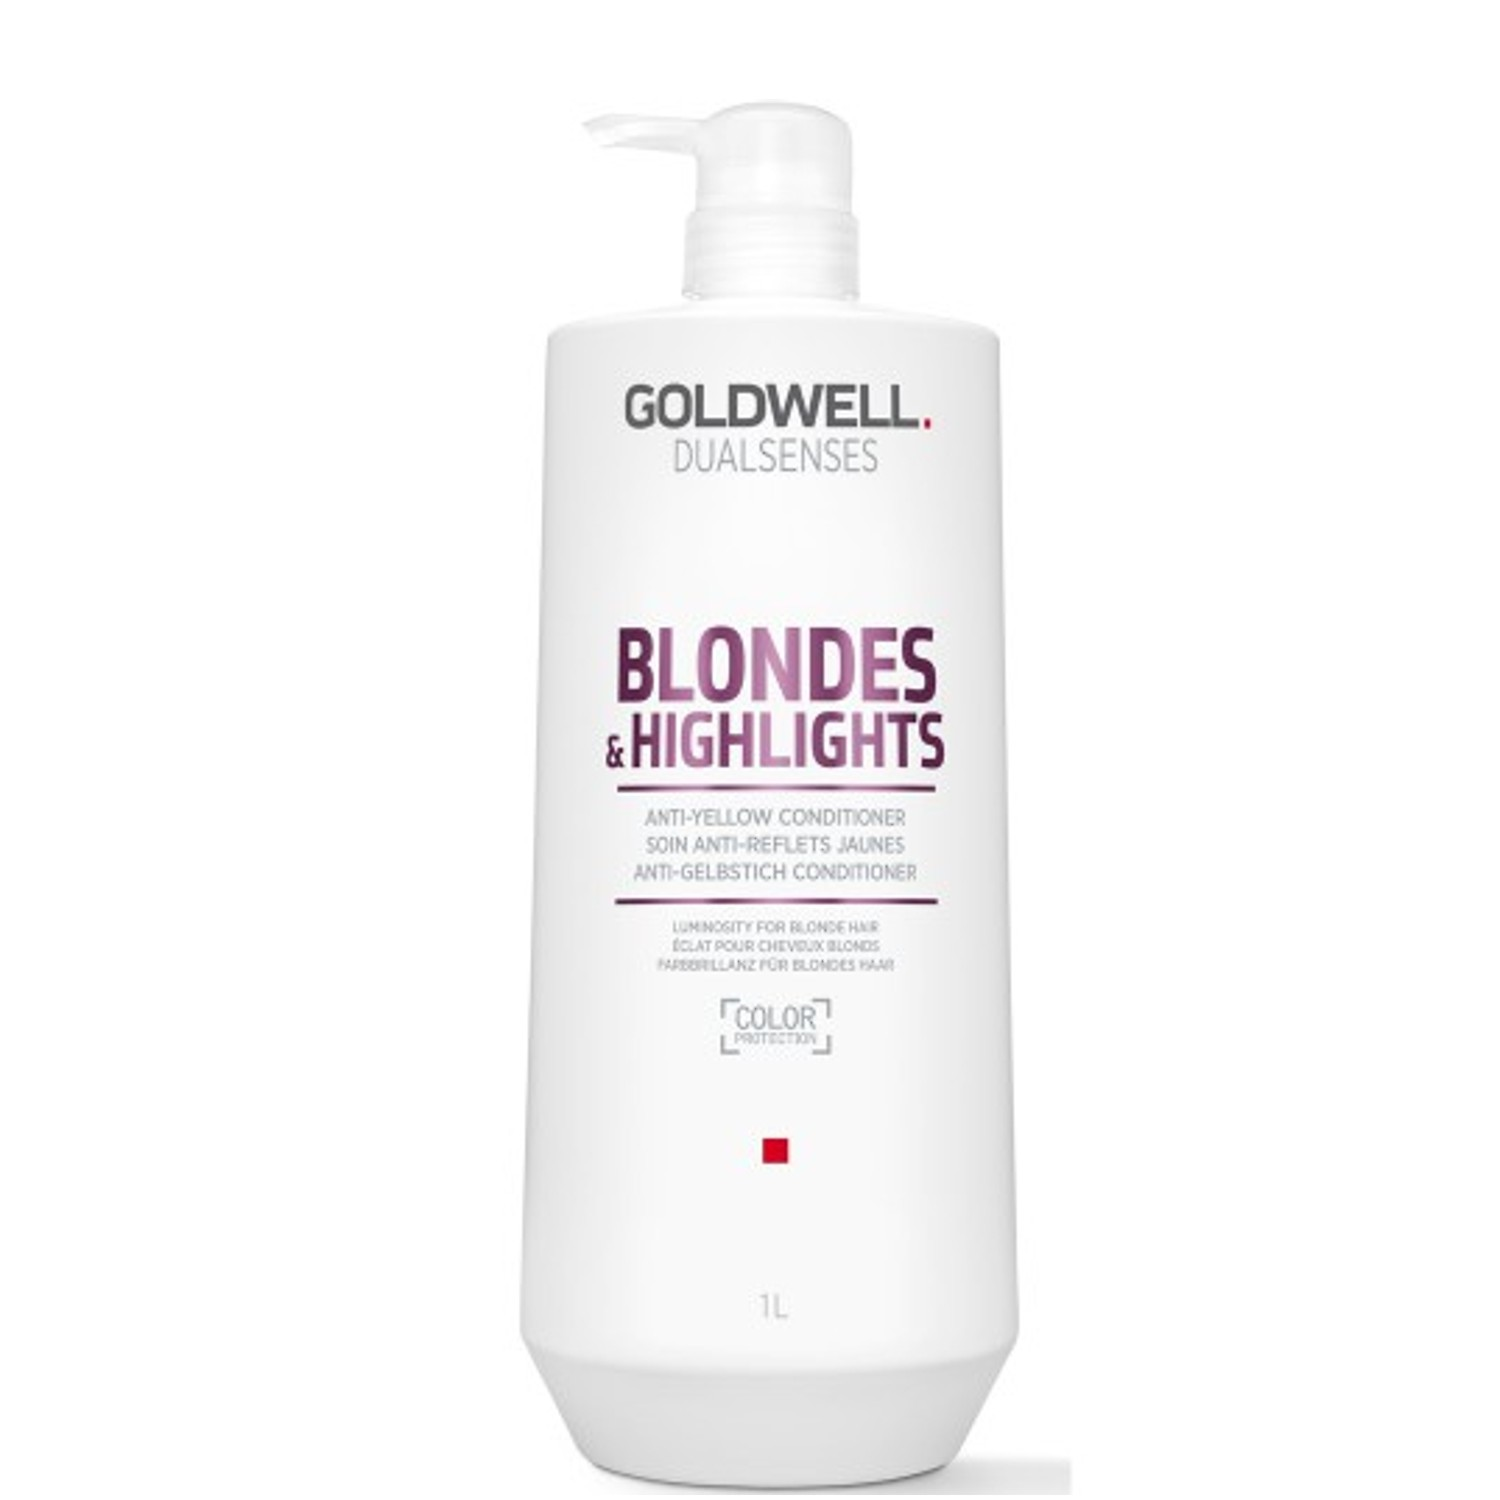 GOLDWELL Dualsenses Blondes & Highlights Anti-Yellow Conditioner 1 L